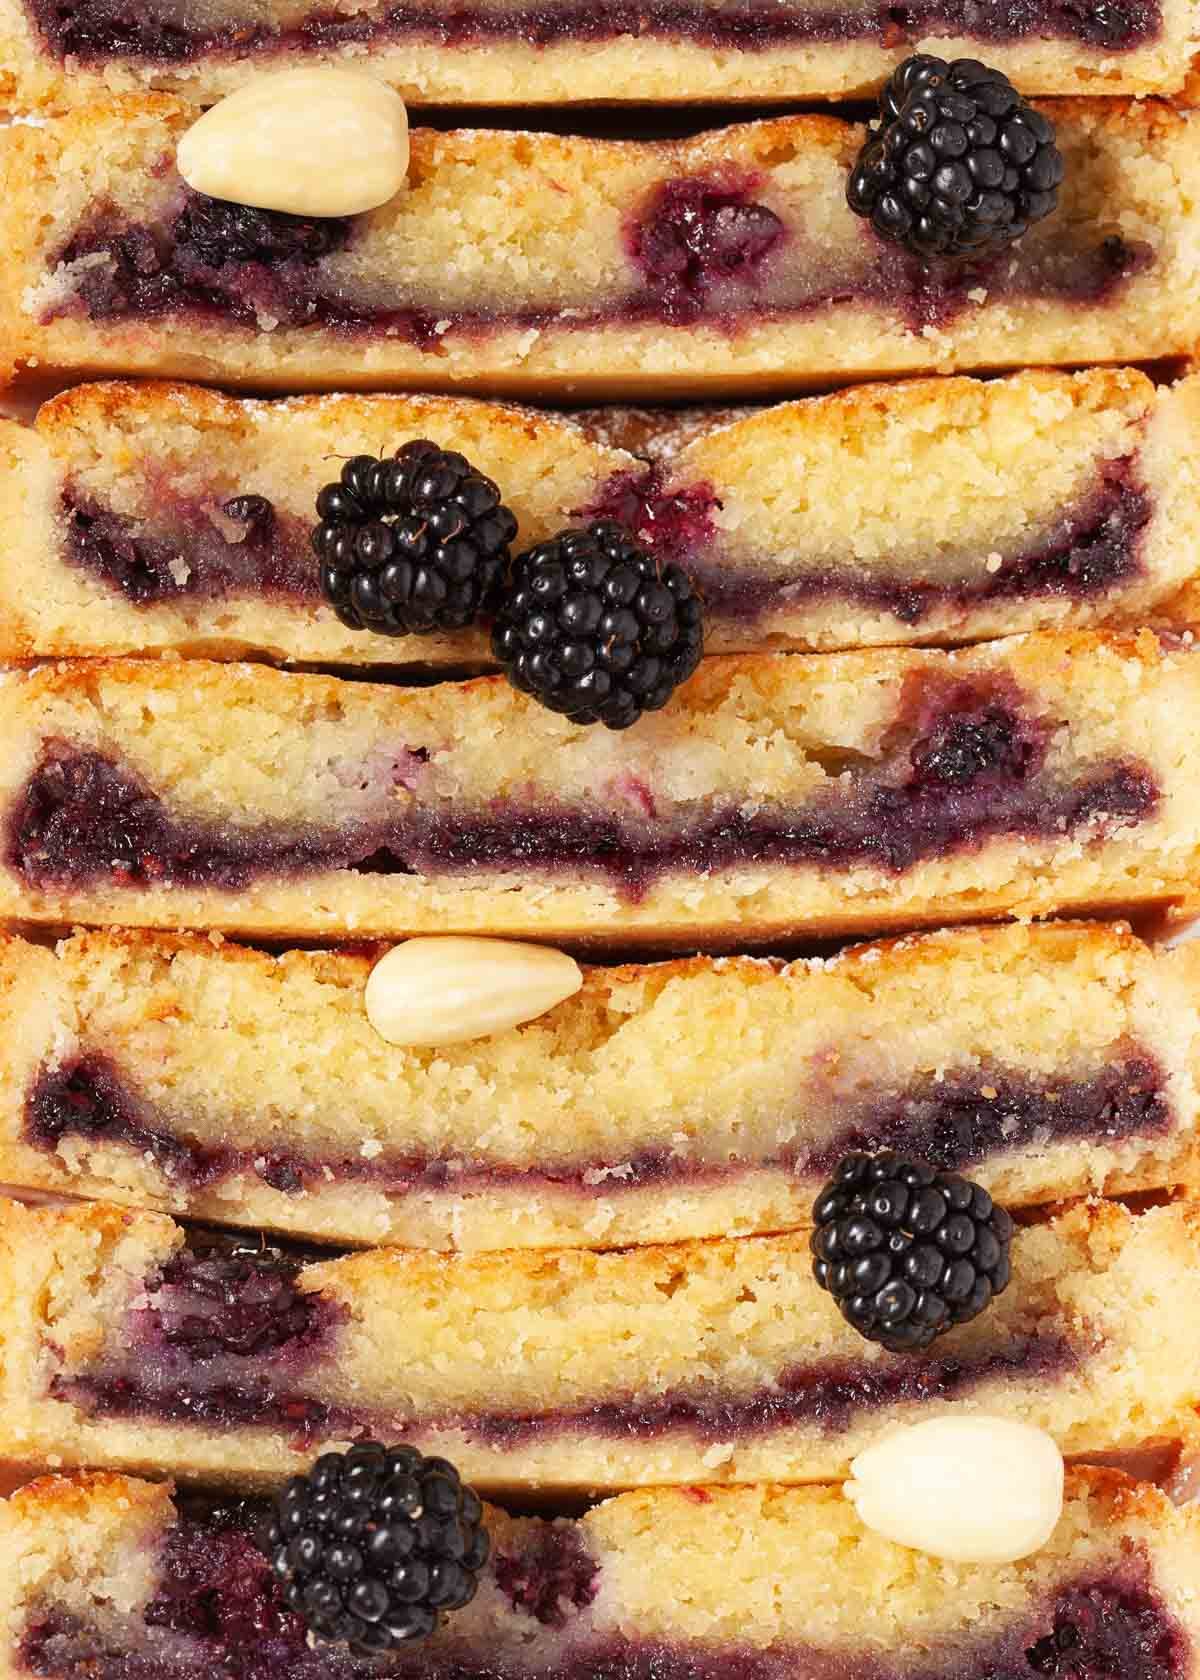 Close up of stacked up almond frangipane tart slices with blackberries